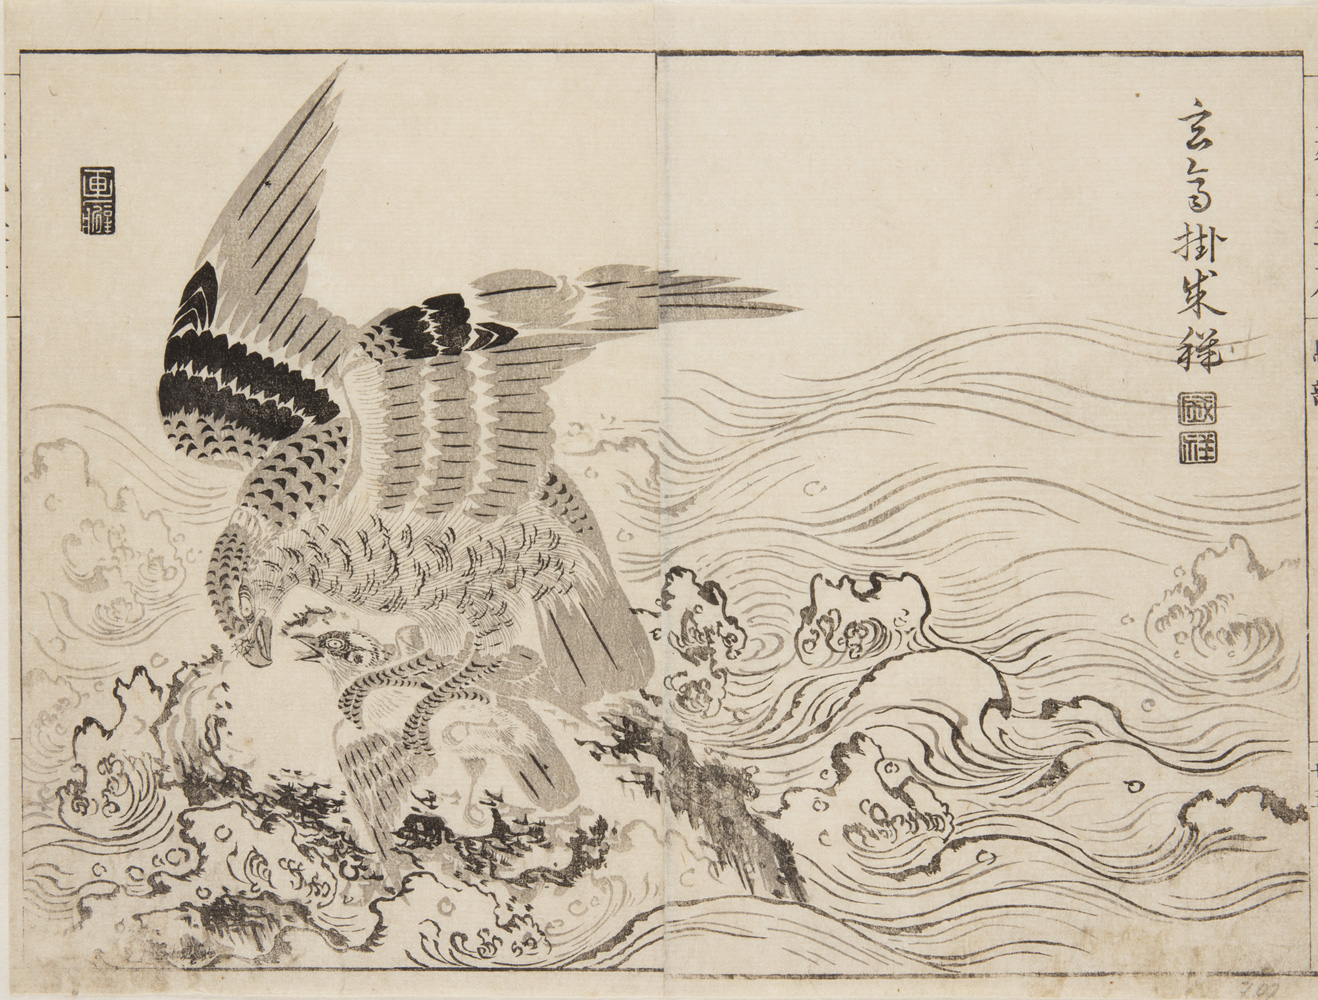 Japanese print of a large eagle clutching a smaller bird in its claws with a swirling sky and landscape in the background.